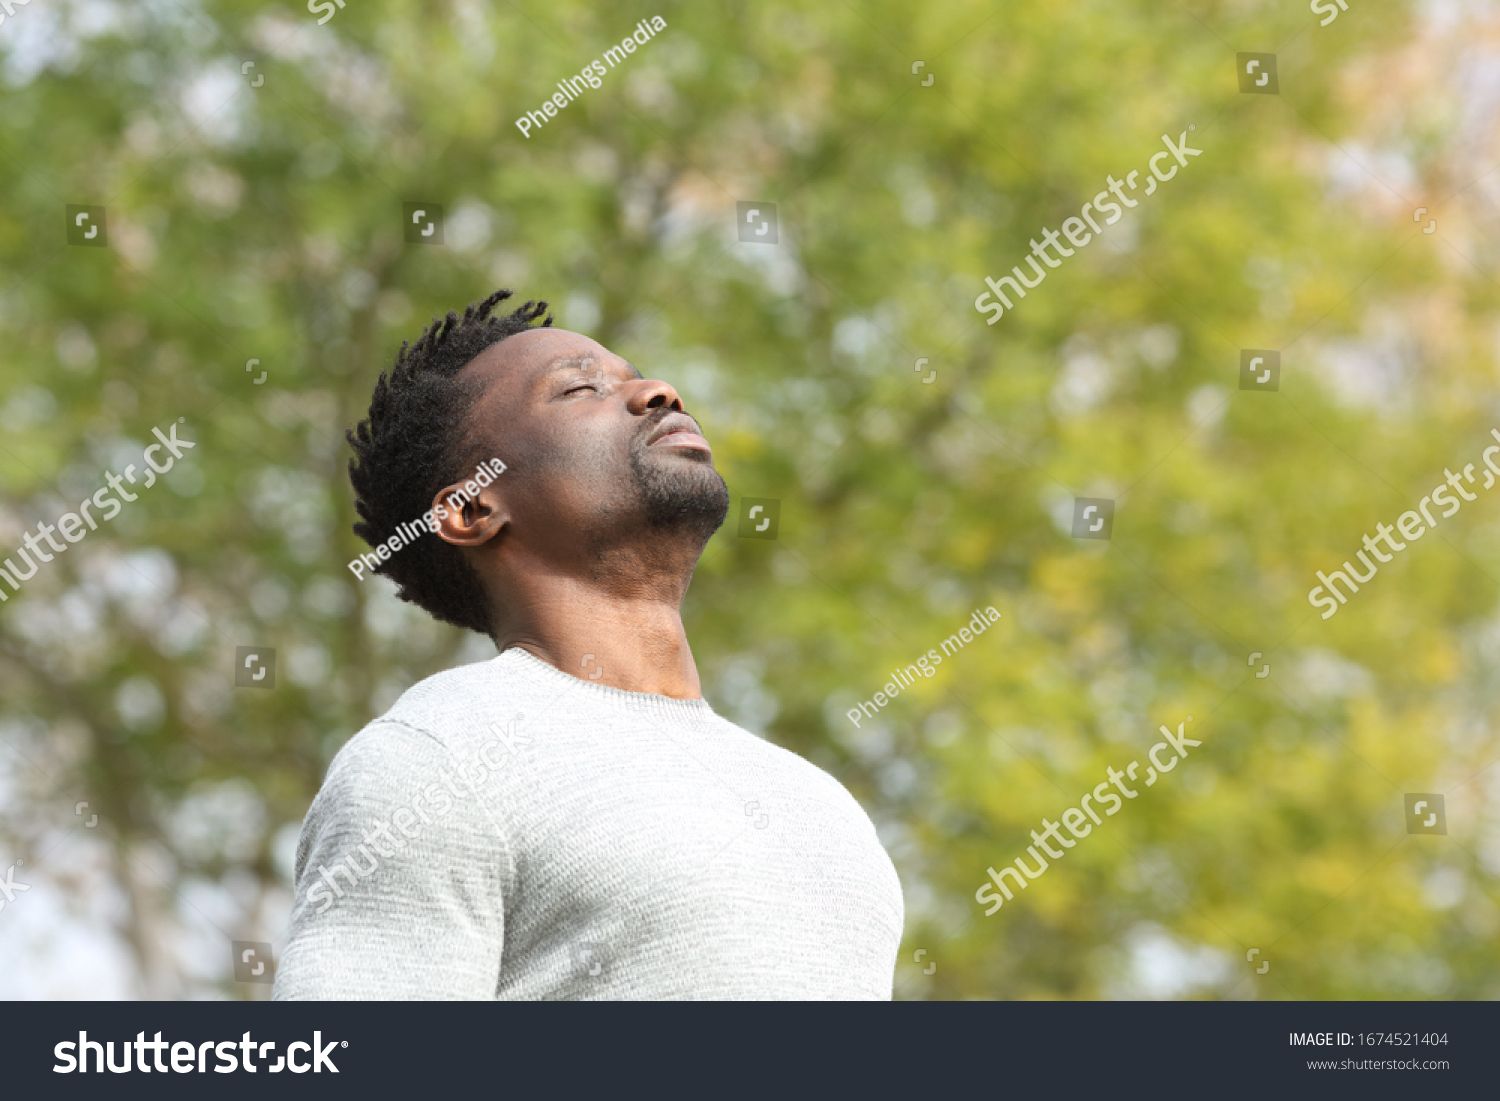 Black serious man breathing deeply fresh air in a park a sunny day with a green tree in the background #1674521404